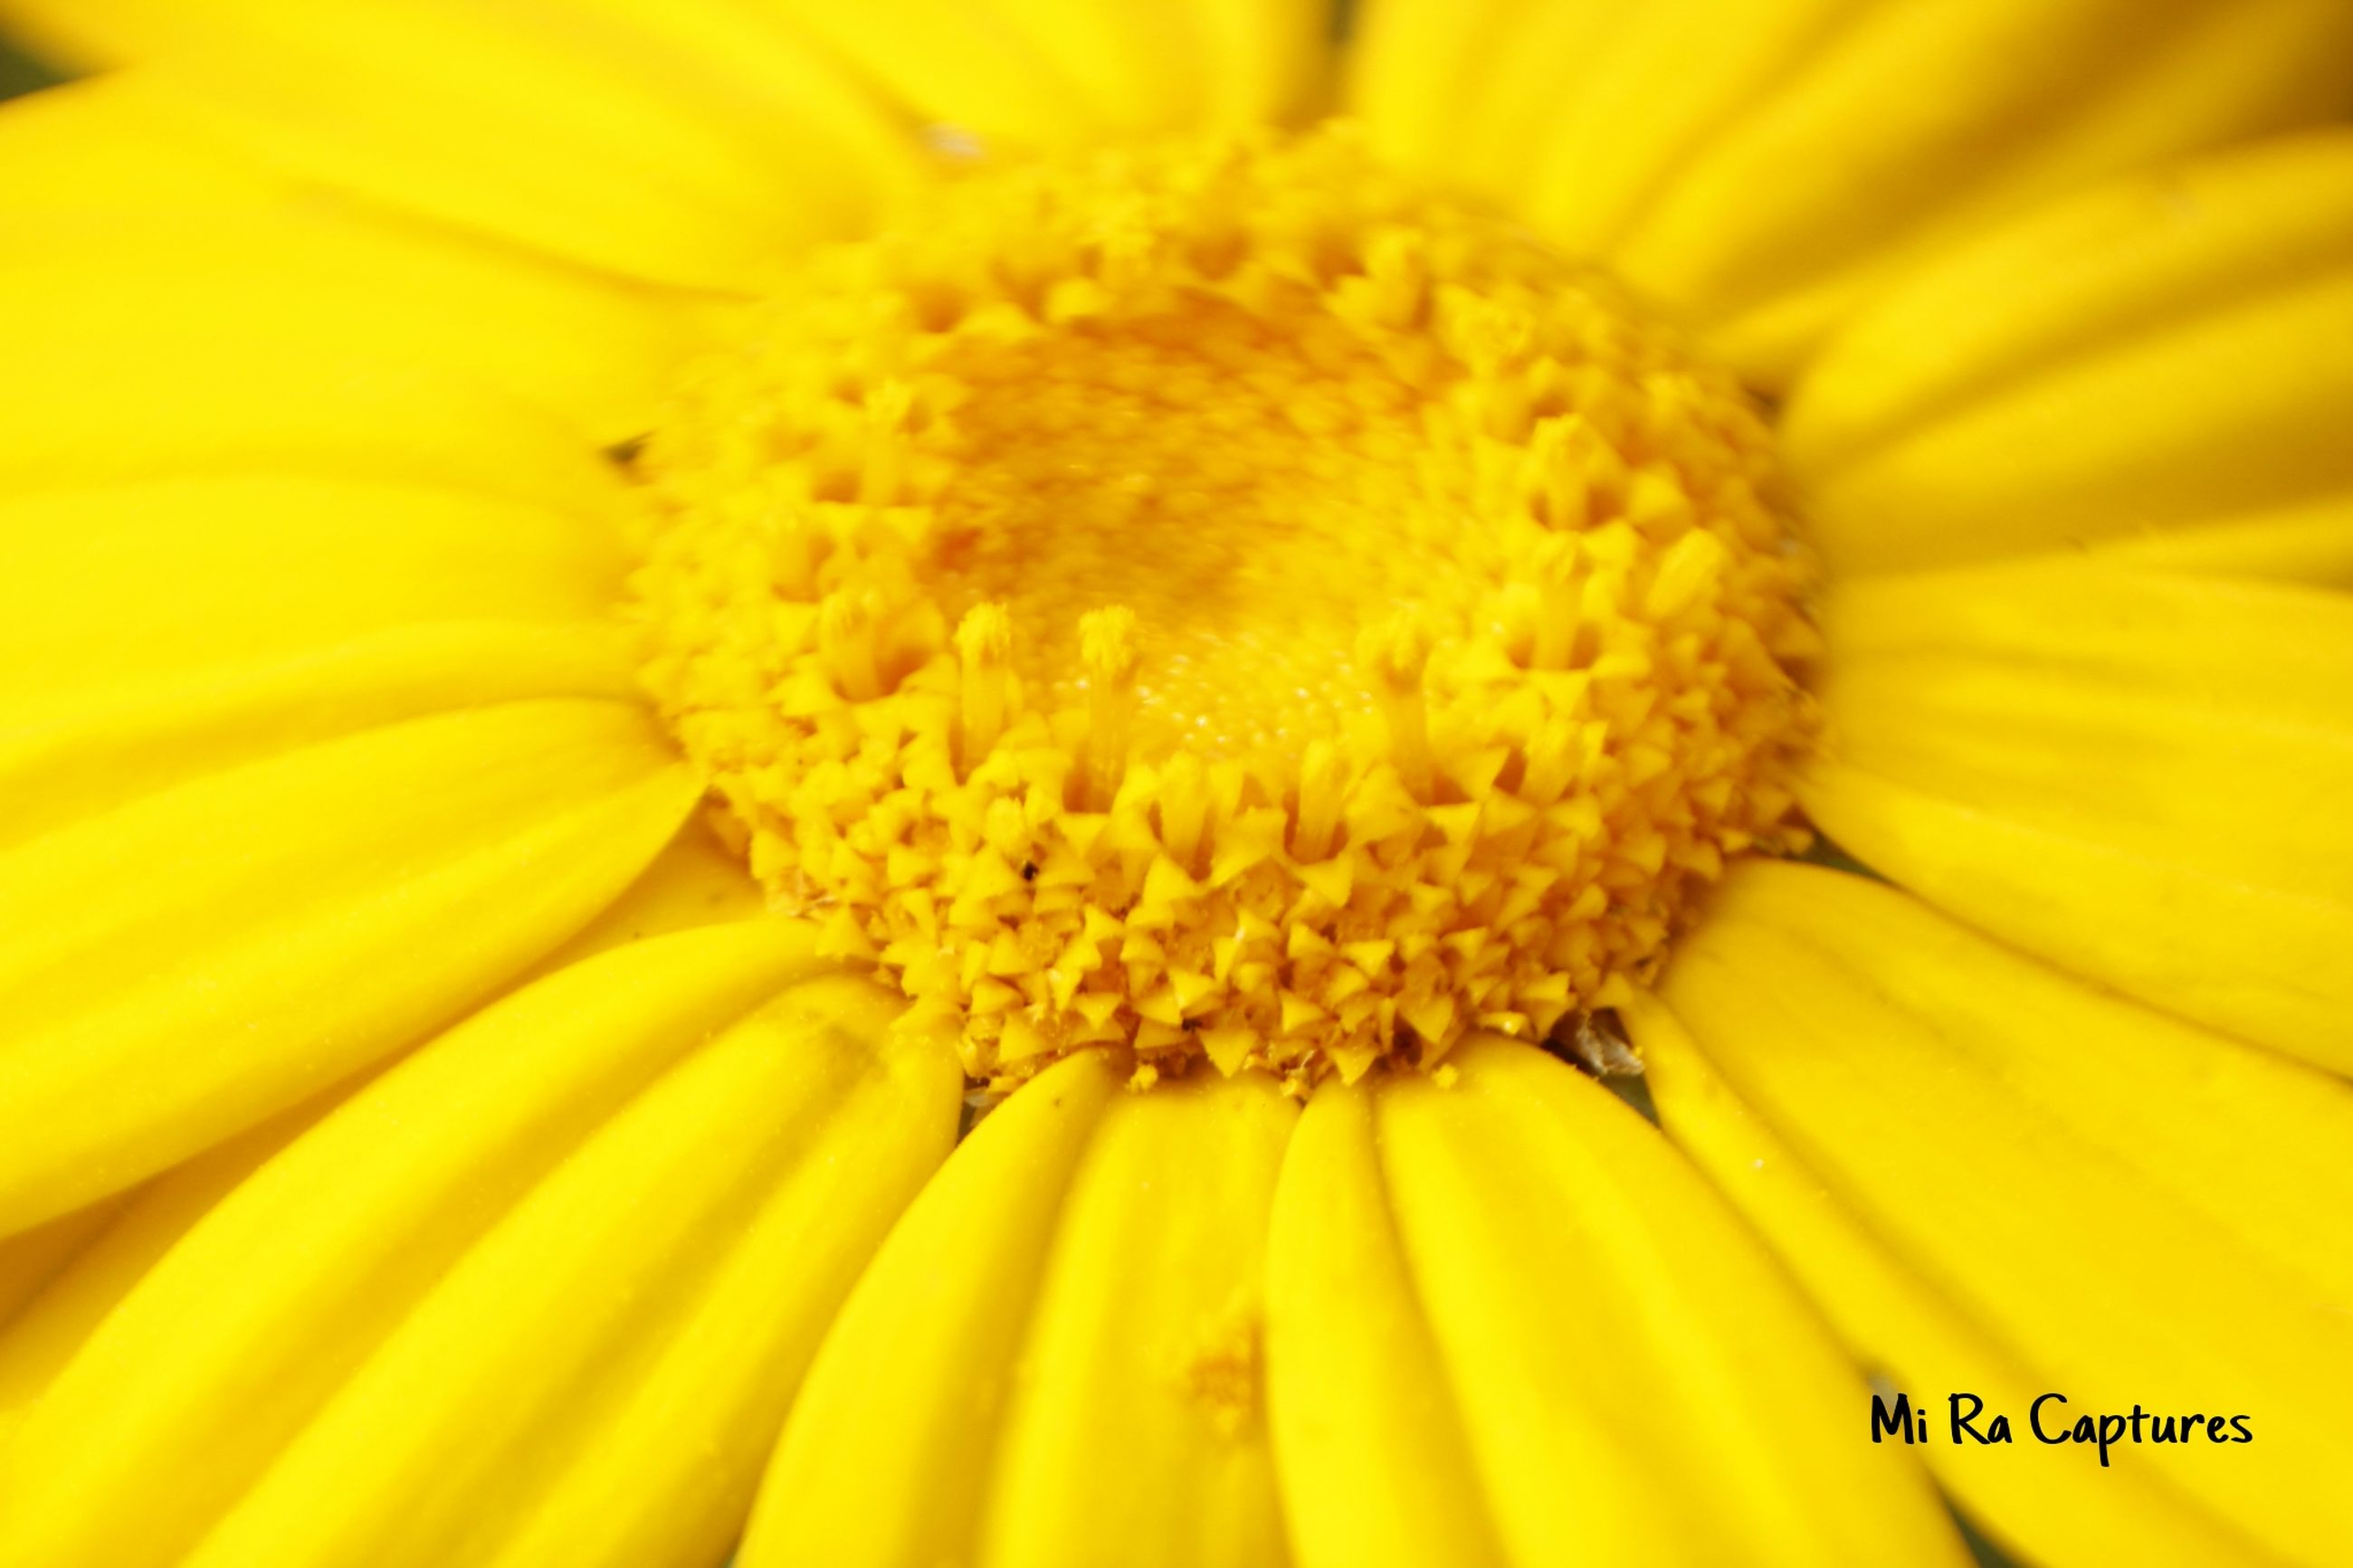 flower, yellow, freshness, petal, flower head, fragility, close-up, beauty in nature, pollen, growth, nature, full frame, single flower, backgrounds, blooming, macro, selective focus, stamen, extreme close-up, in bloom